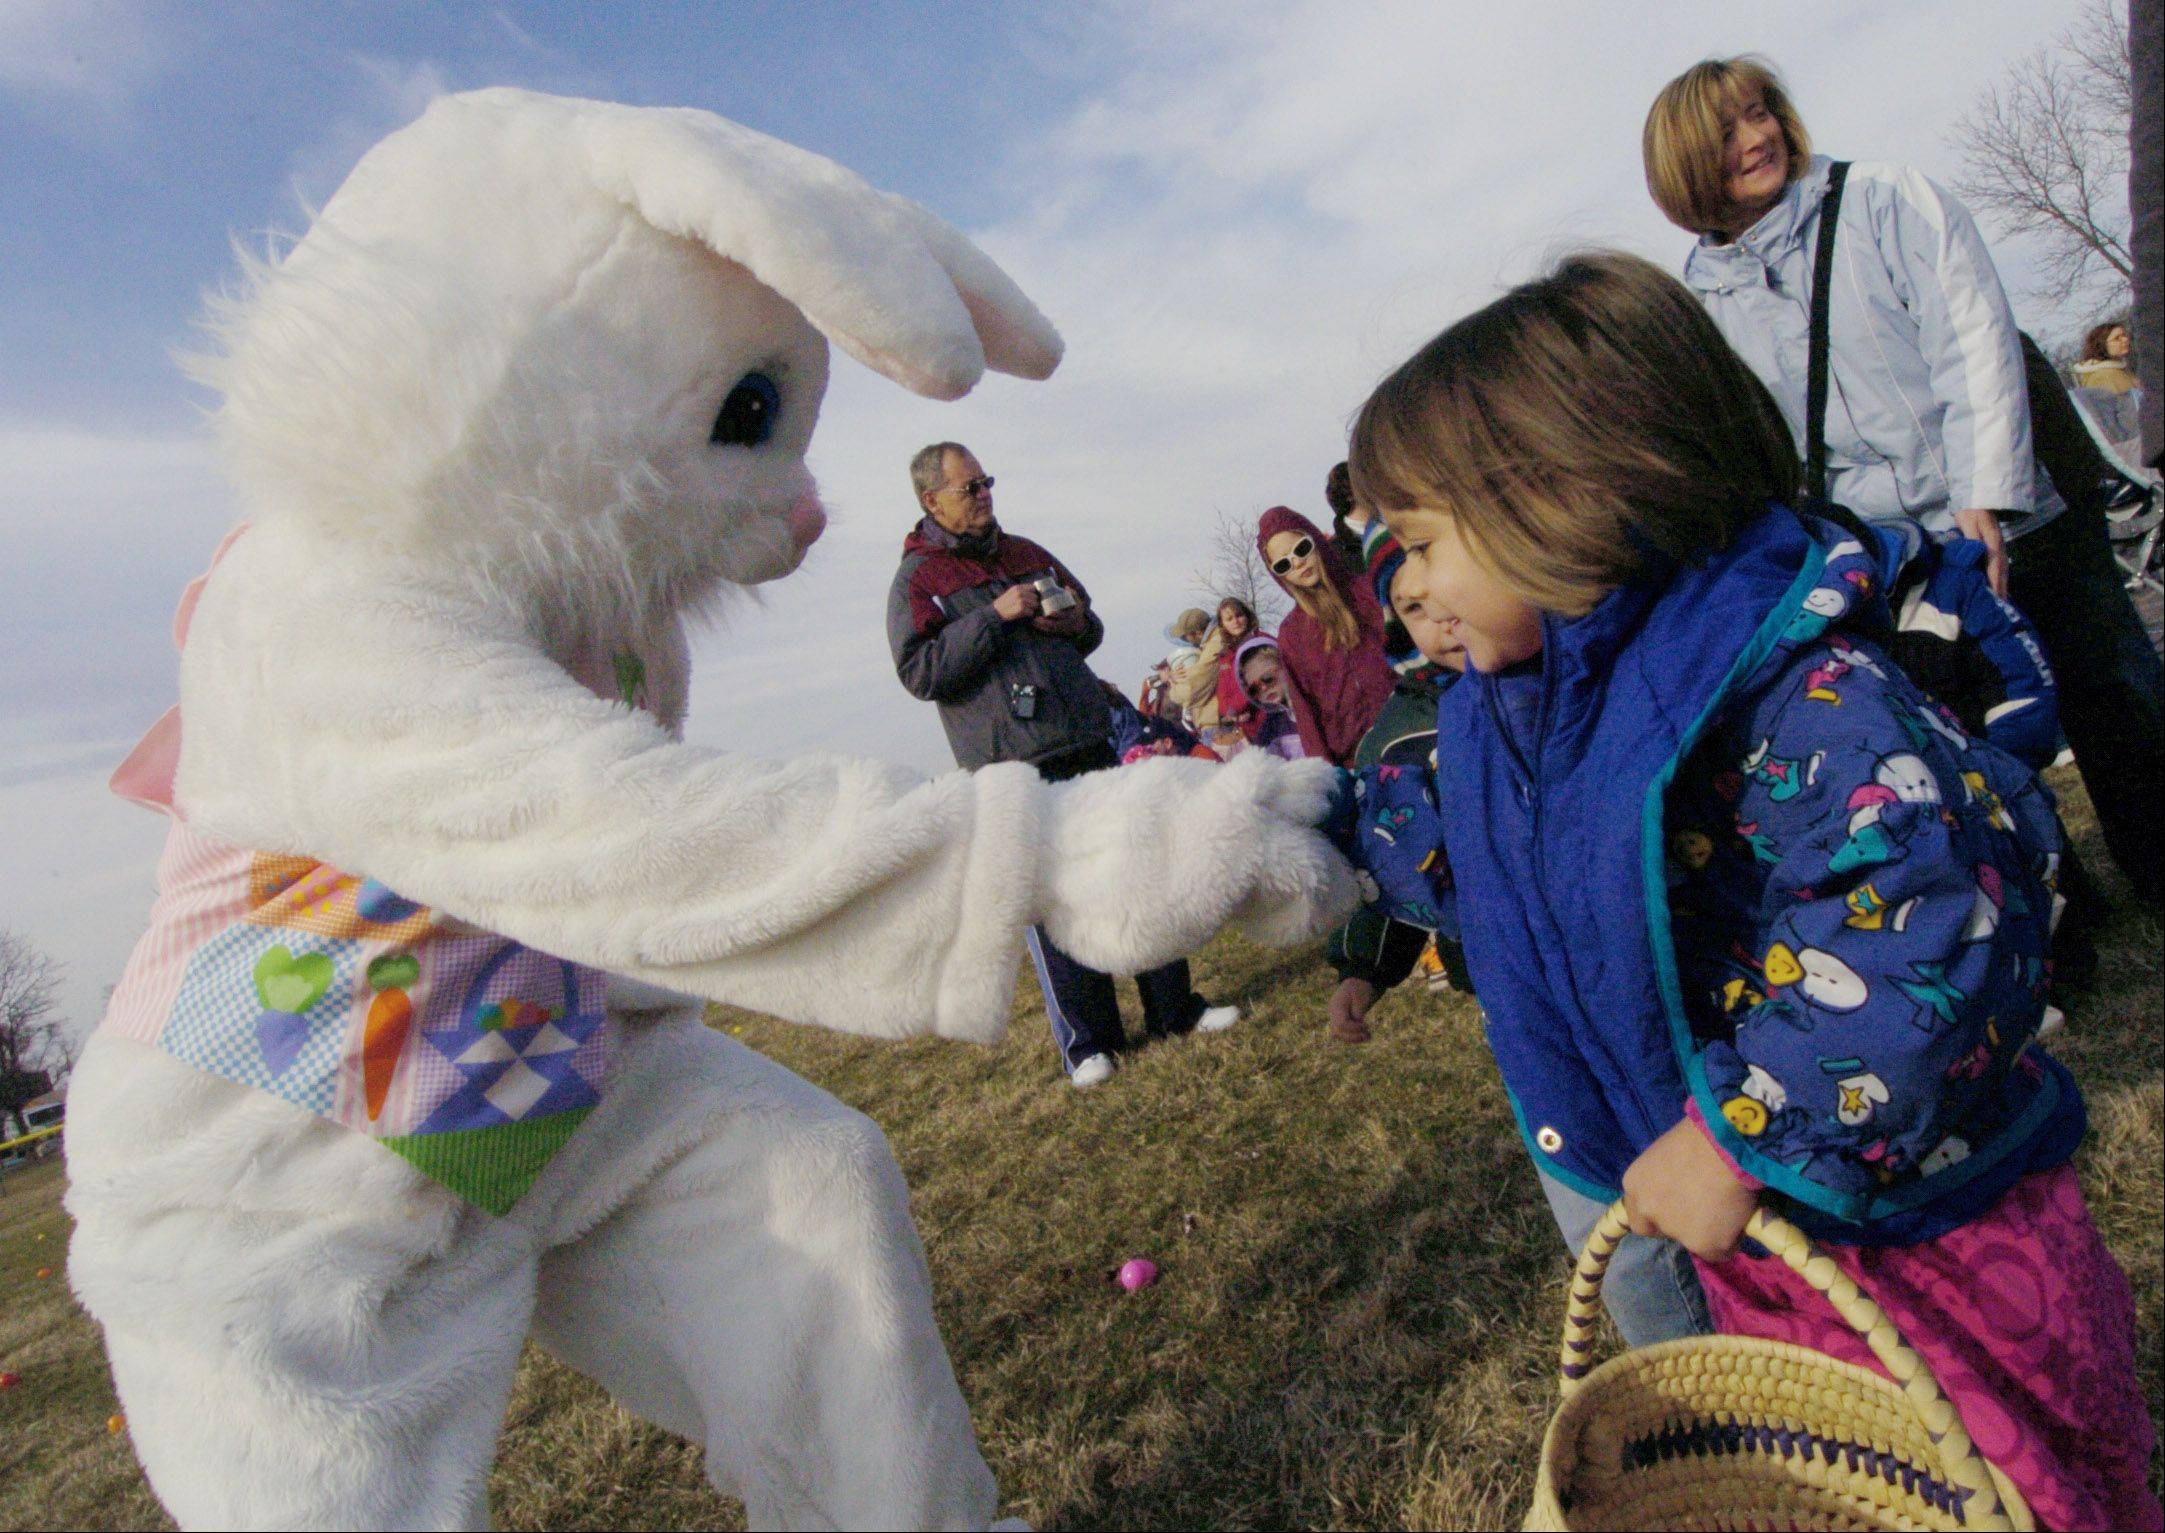 JOE LEWNARD/jlewnard@dailyherald.com, 2010The Easter bunny visits with children at Wauconda Park District's annual egg hunt at Cook Park in Wauconda.